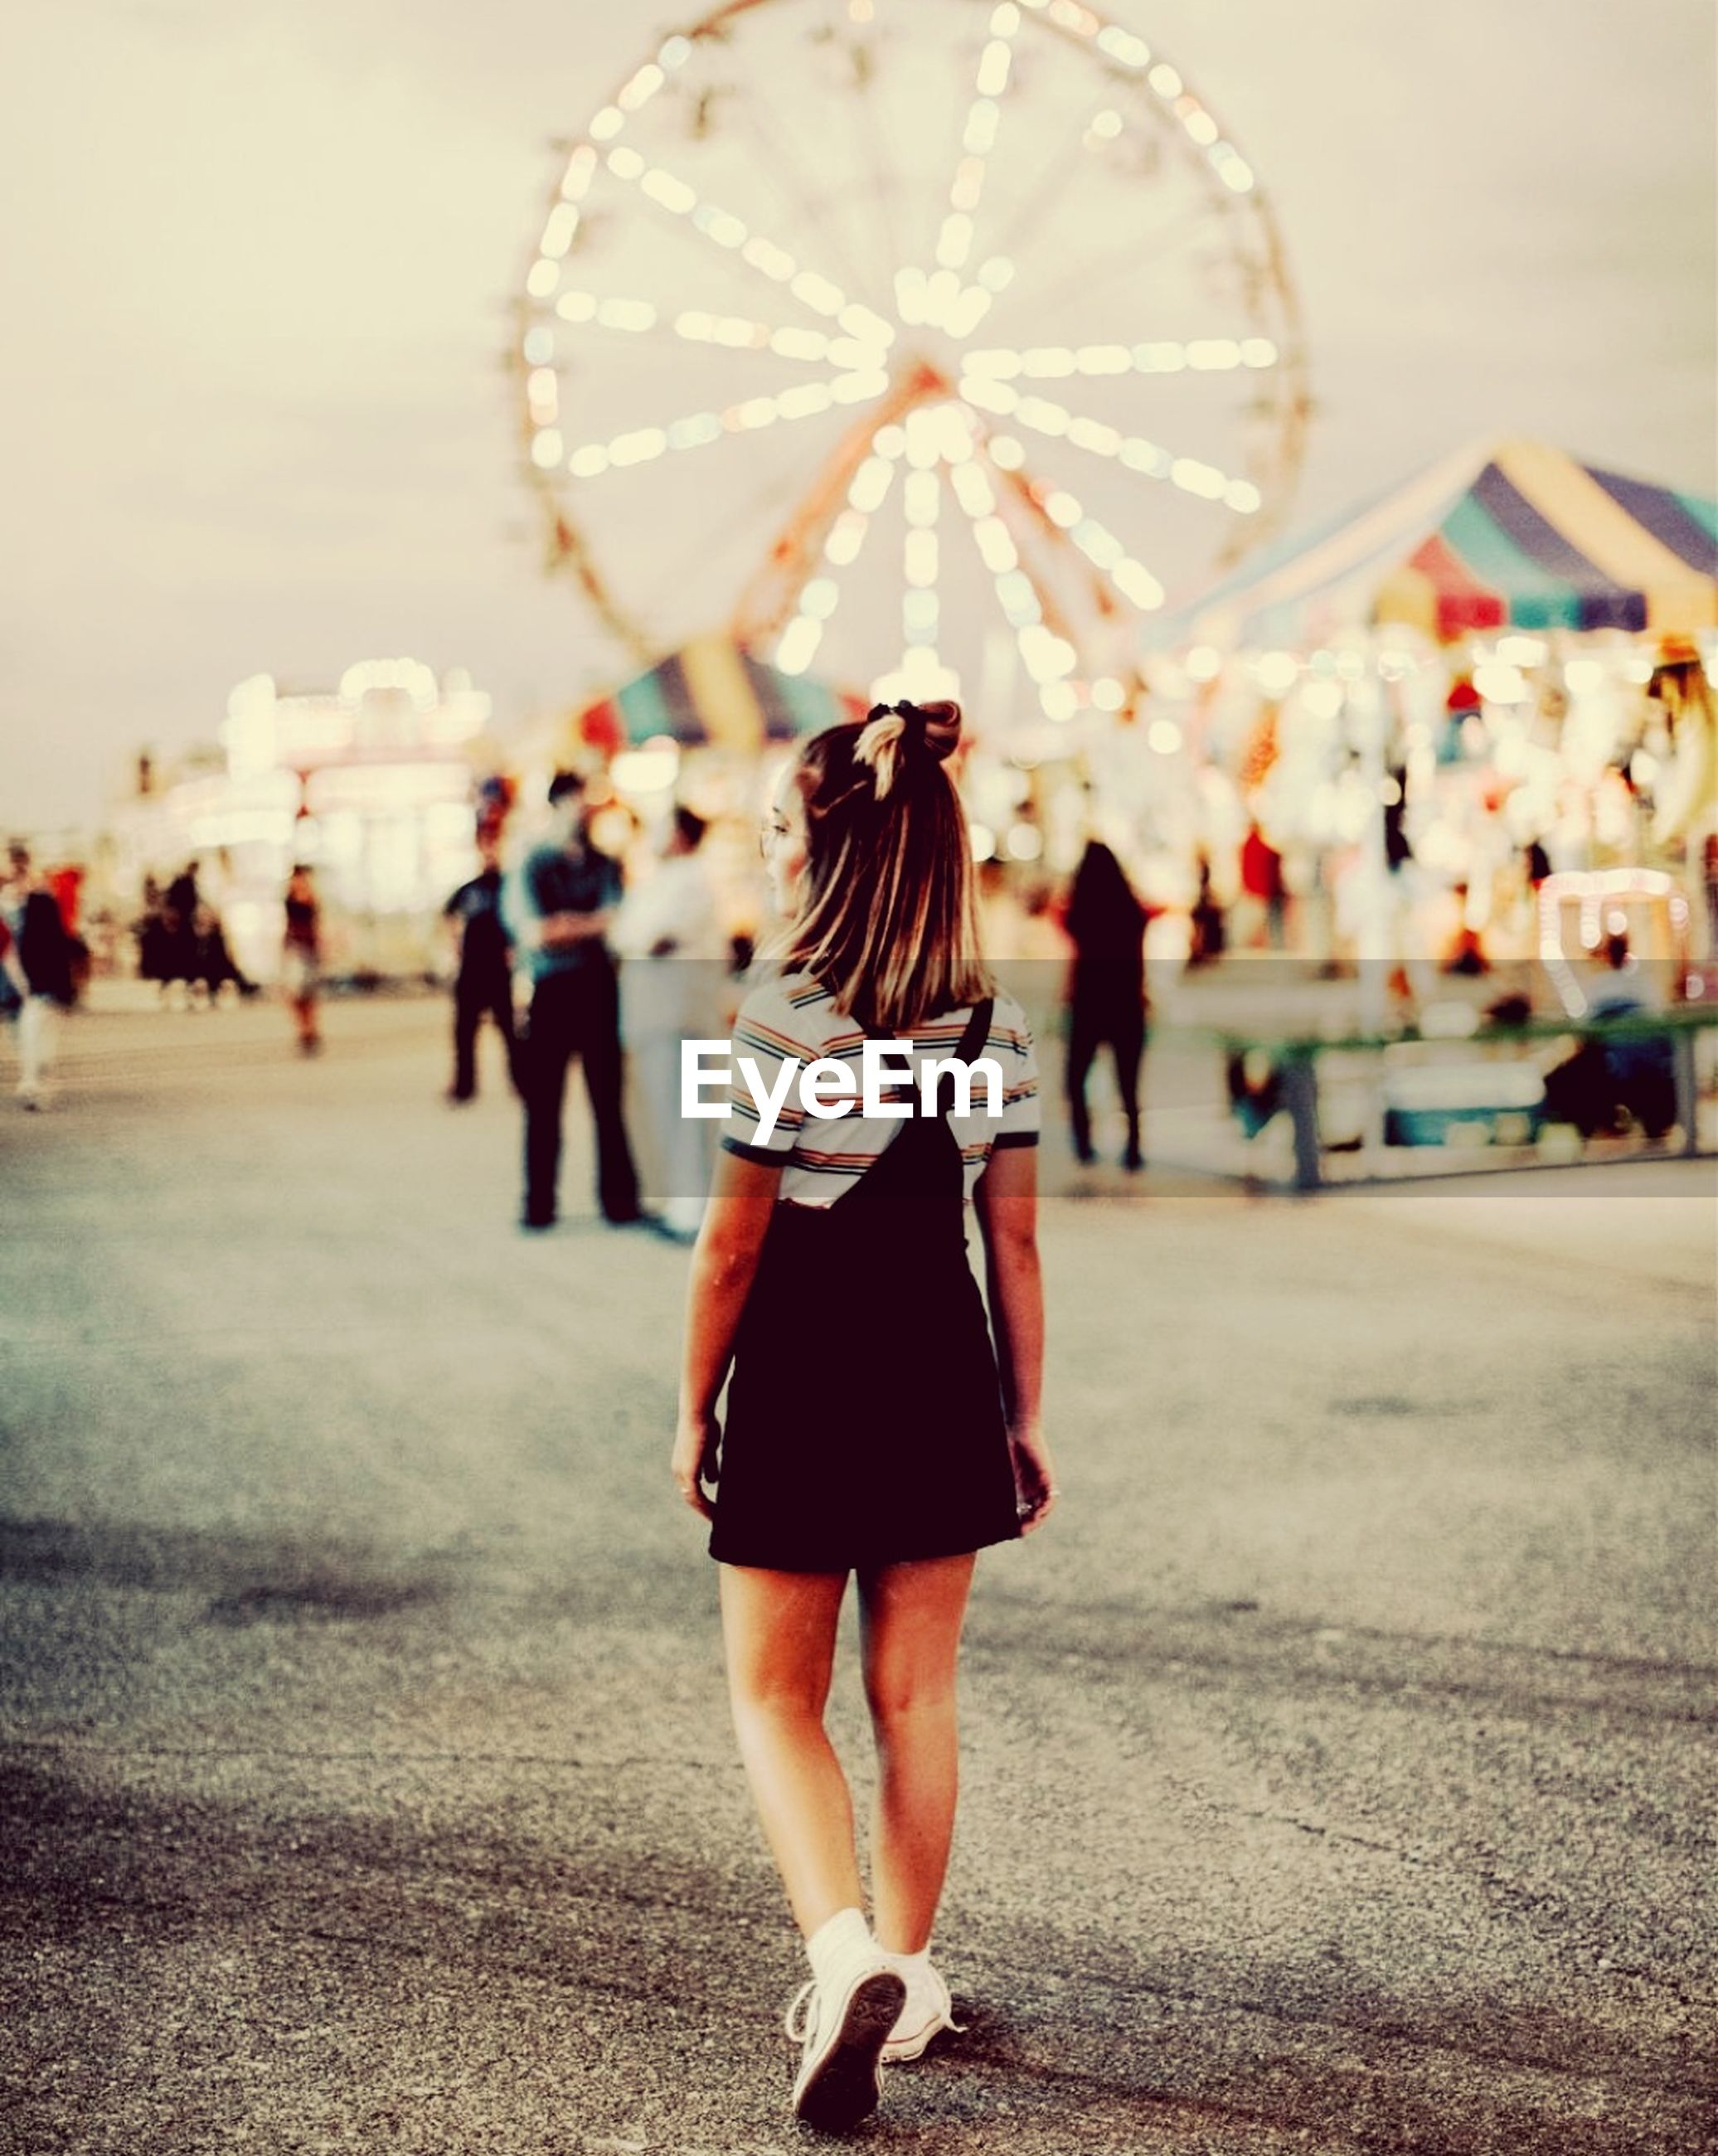 rear view, real people, full length, one person, focus on foreground, women, adult, leisure activity, lifestyles, incidental people, city, walking, amusement park, street, standing, amusement park ride, arts culture and entertainment, ferris wheel, day, hairstyle, shorts